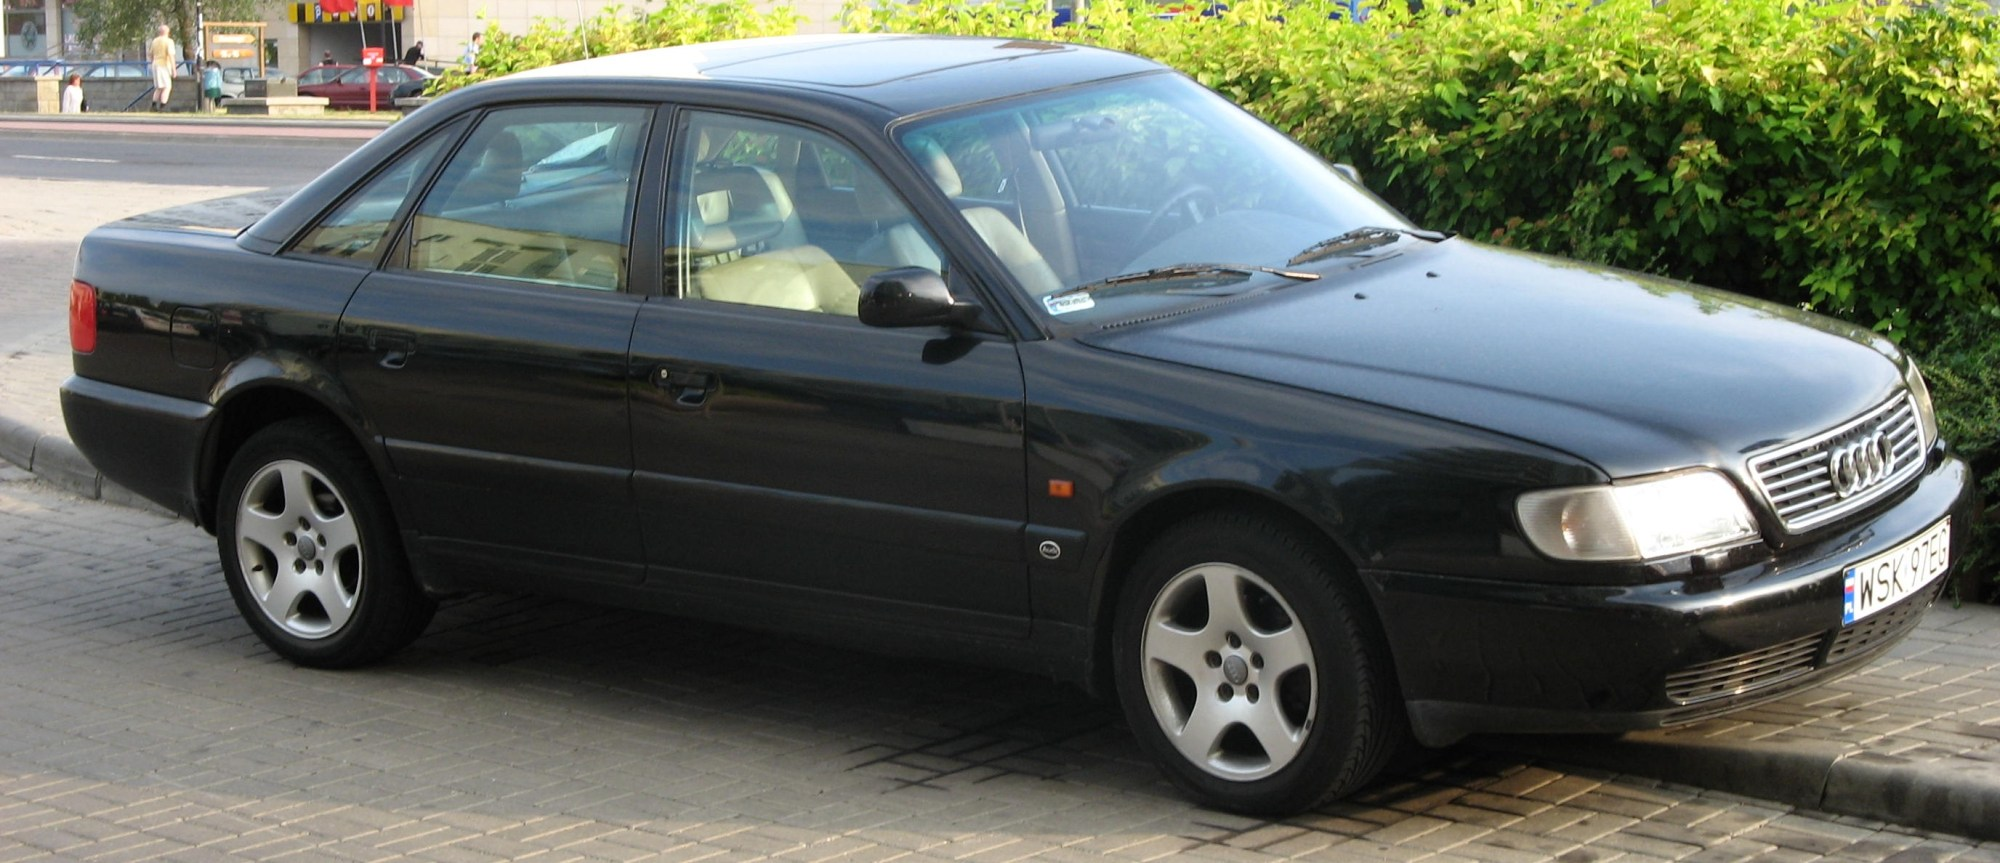 hight resolution of file audi 100 sedan c4 jpg